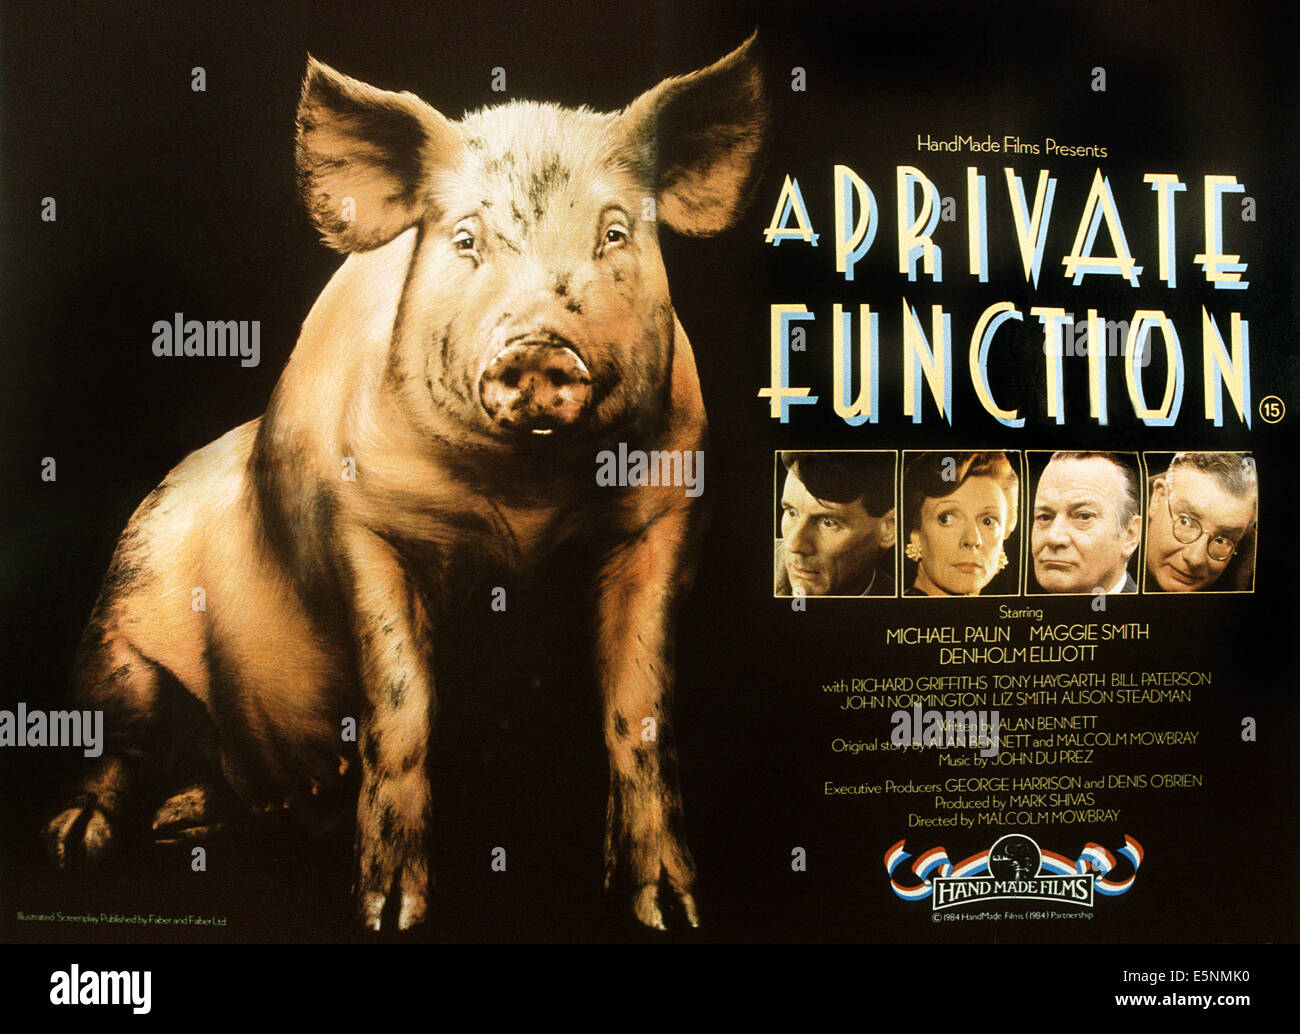 A PRIVATE FUNCTION, British poster, from left: Michael Palin, Maggie Smith, Denholm Elliott, Richard Griffiths, - Stock Image